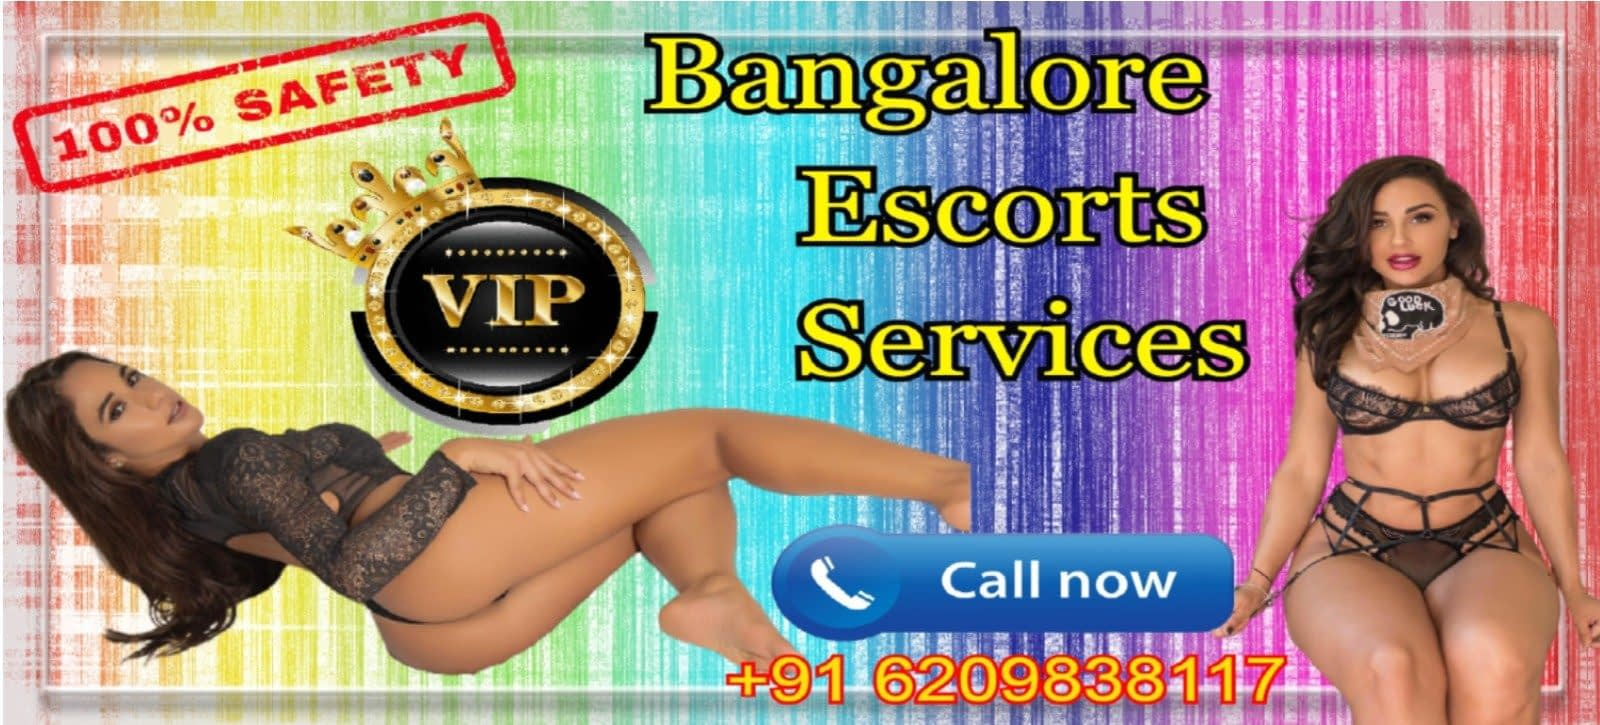 Bangalore-Escorts services